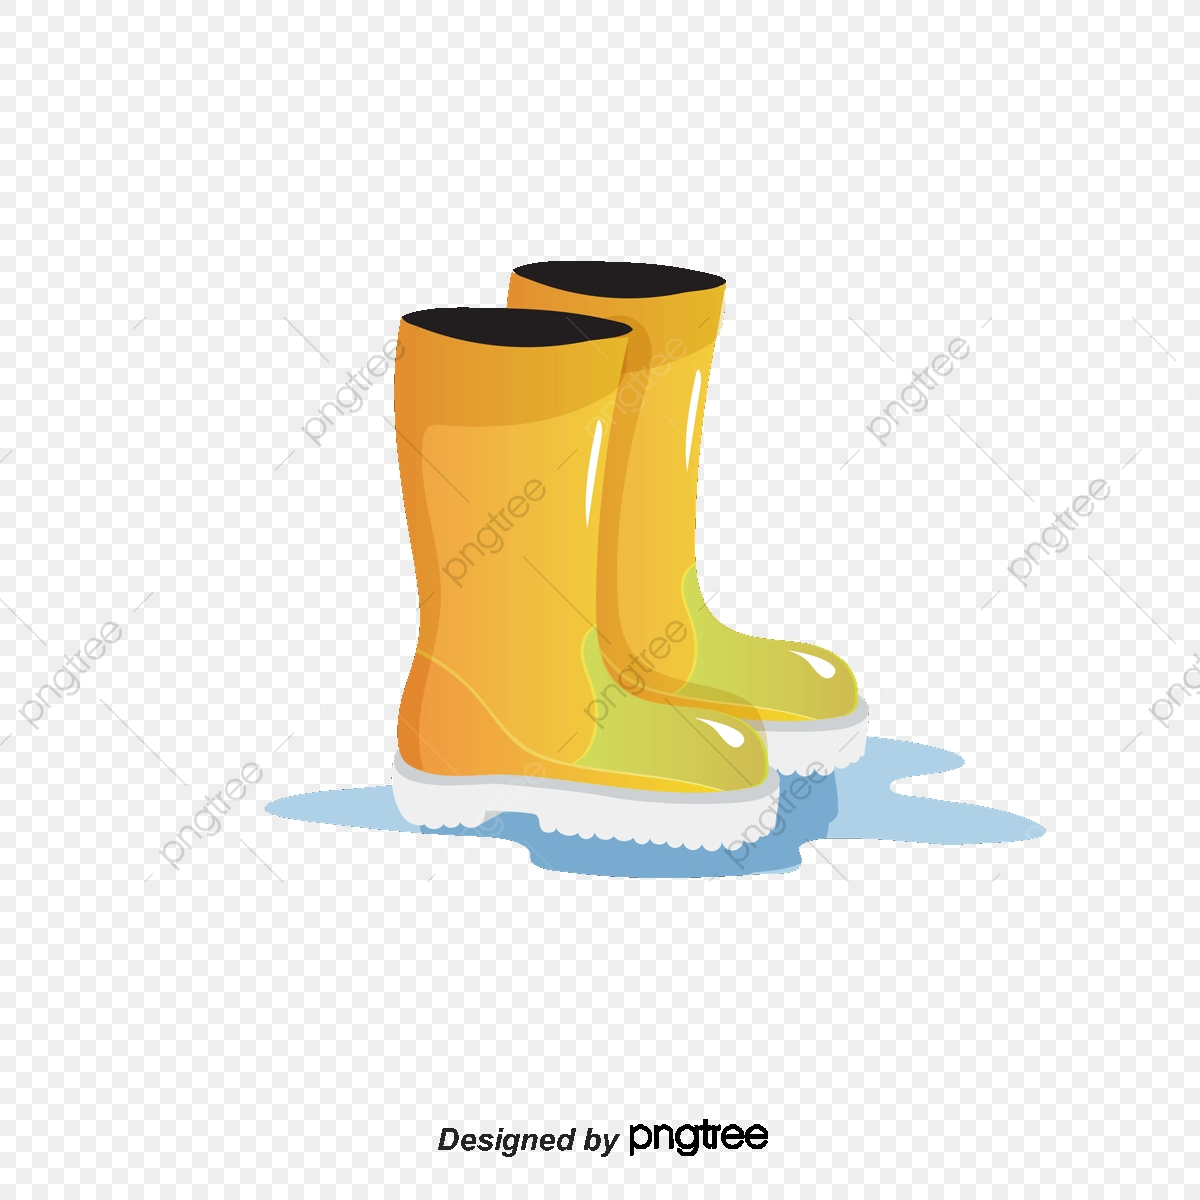 9e7f6803adc Falling Snow Boots Beautiful Boots Cartoon Boots Boots Illustration ...